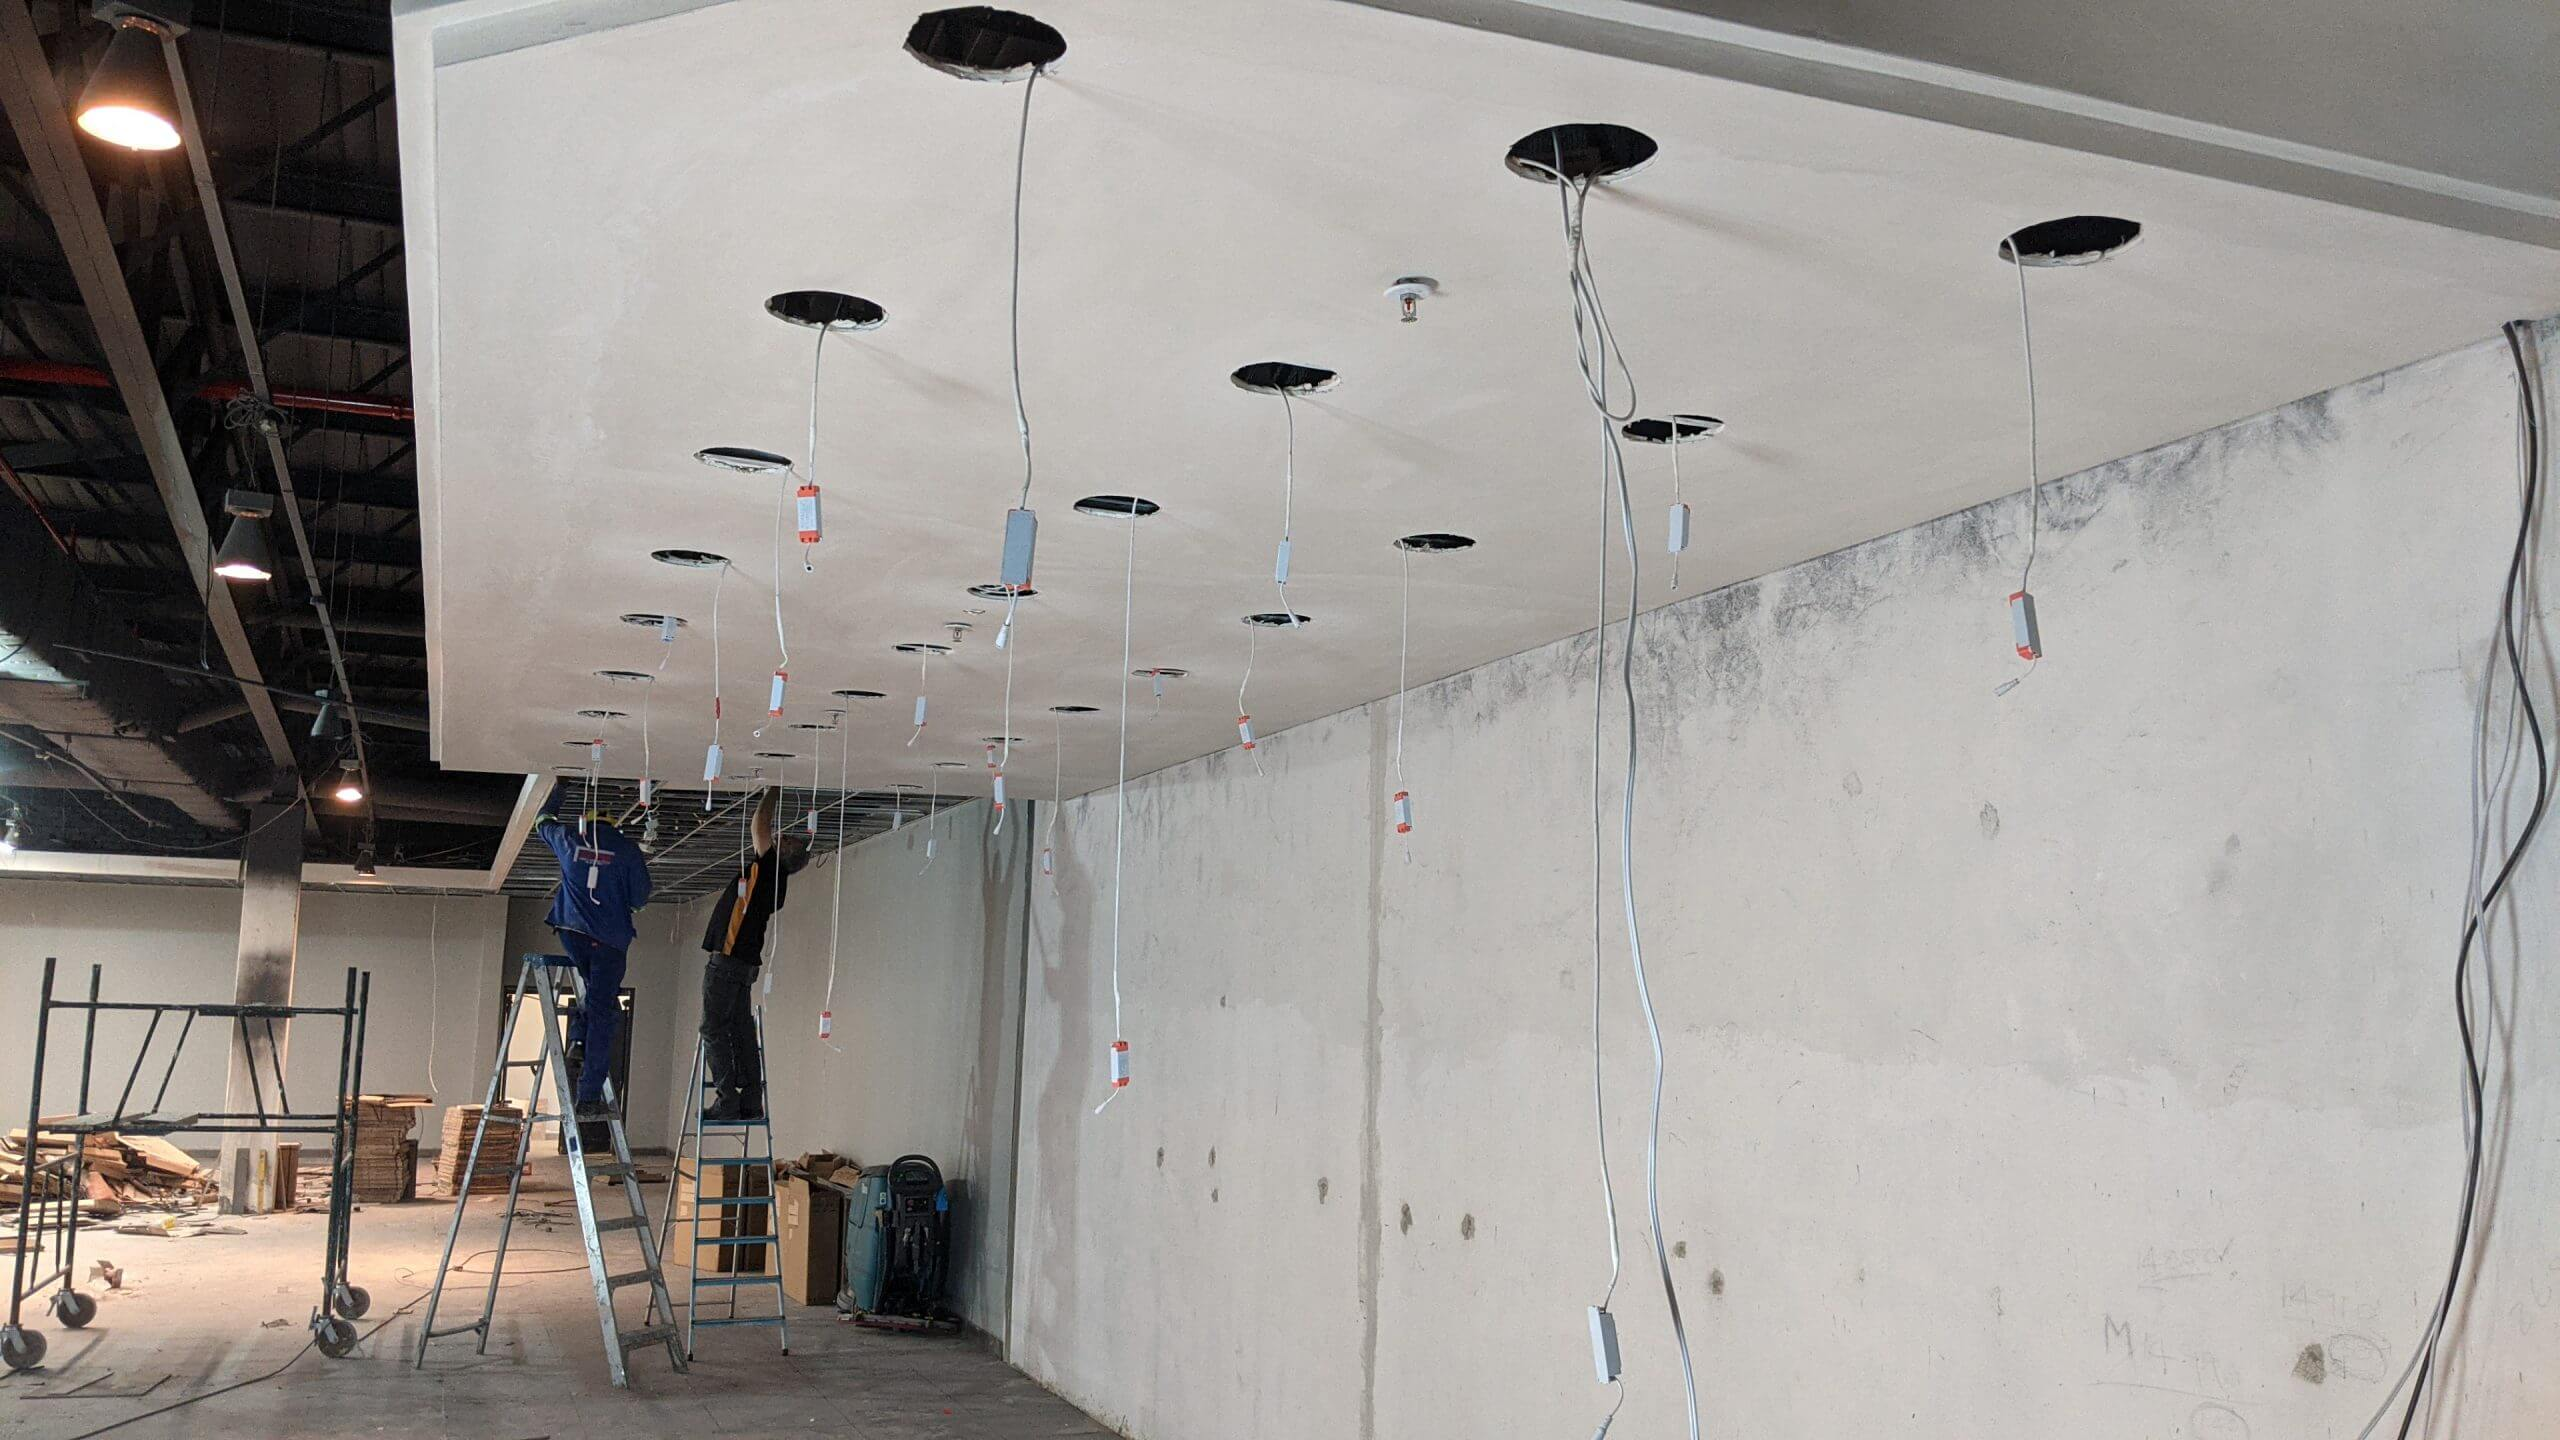 PXL_20210712_131058242 | Electrical Contractor in Centurion | Electrician | Sunstroke Electrical